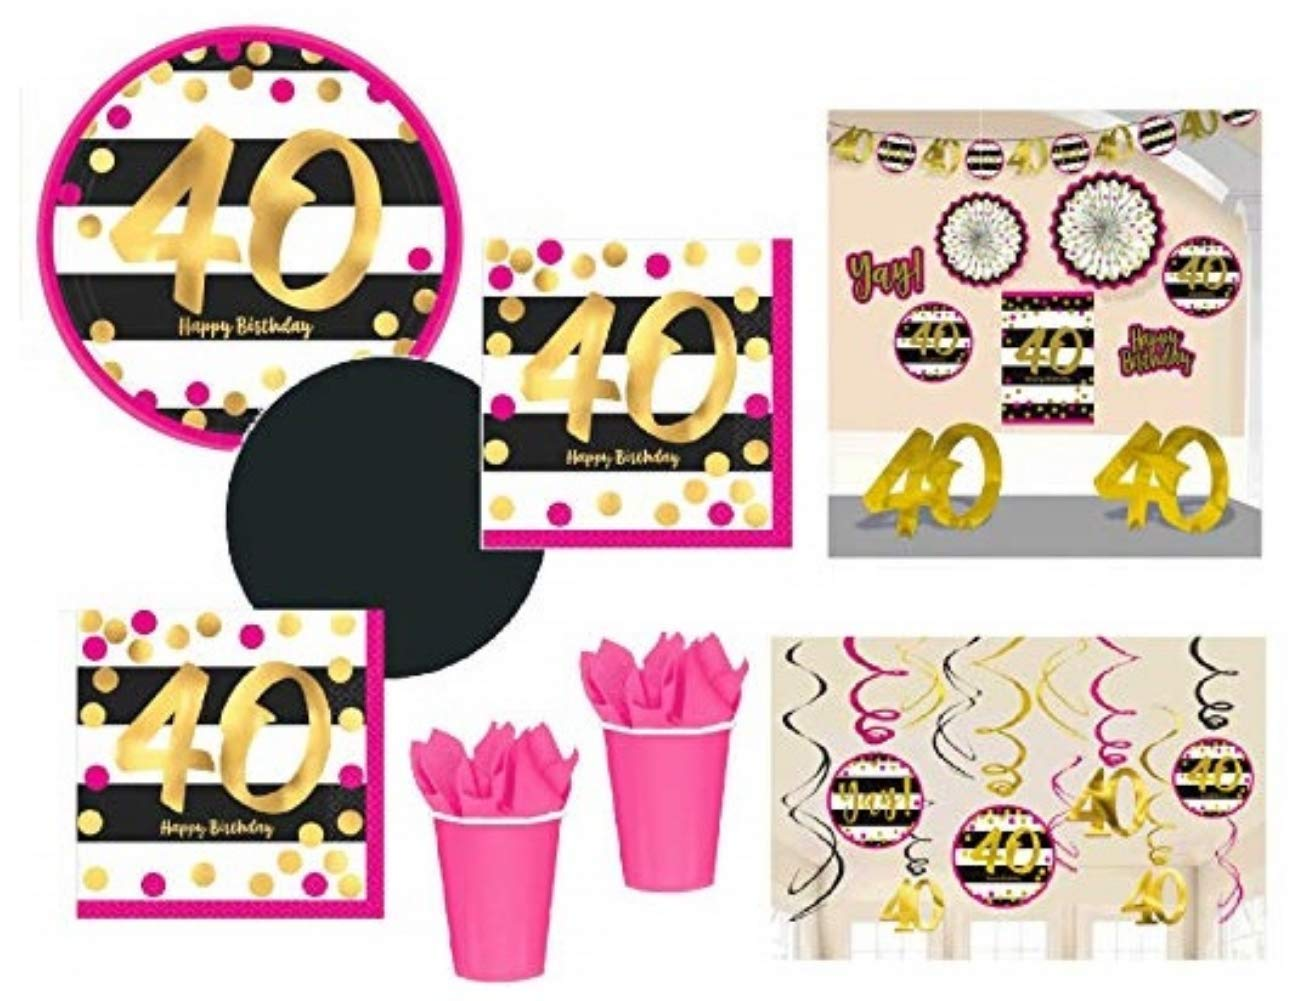 FAKKOS Design 40th Birthday Decorations And Party Supplies In Pink Gold Black Foil For 24 Guests